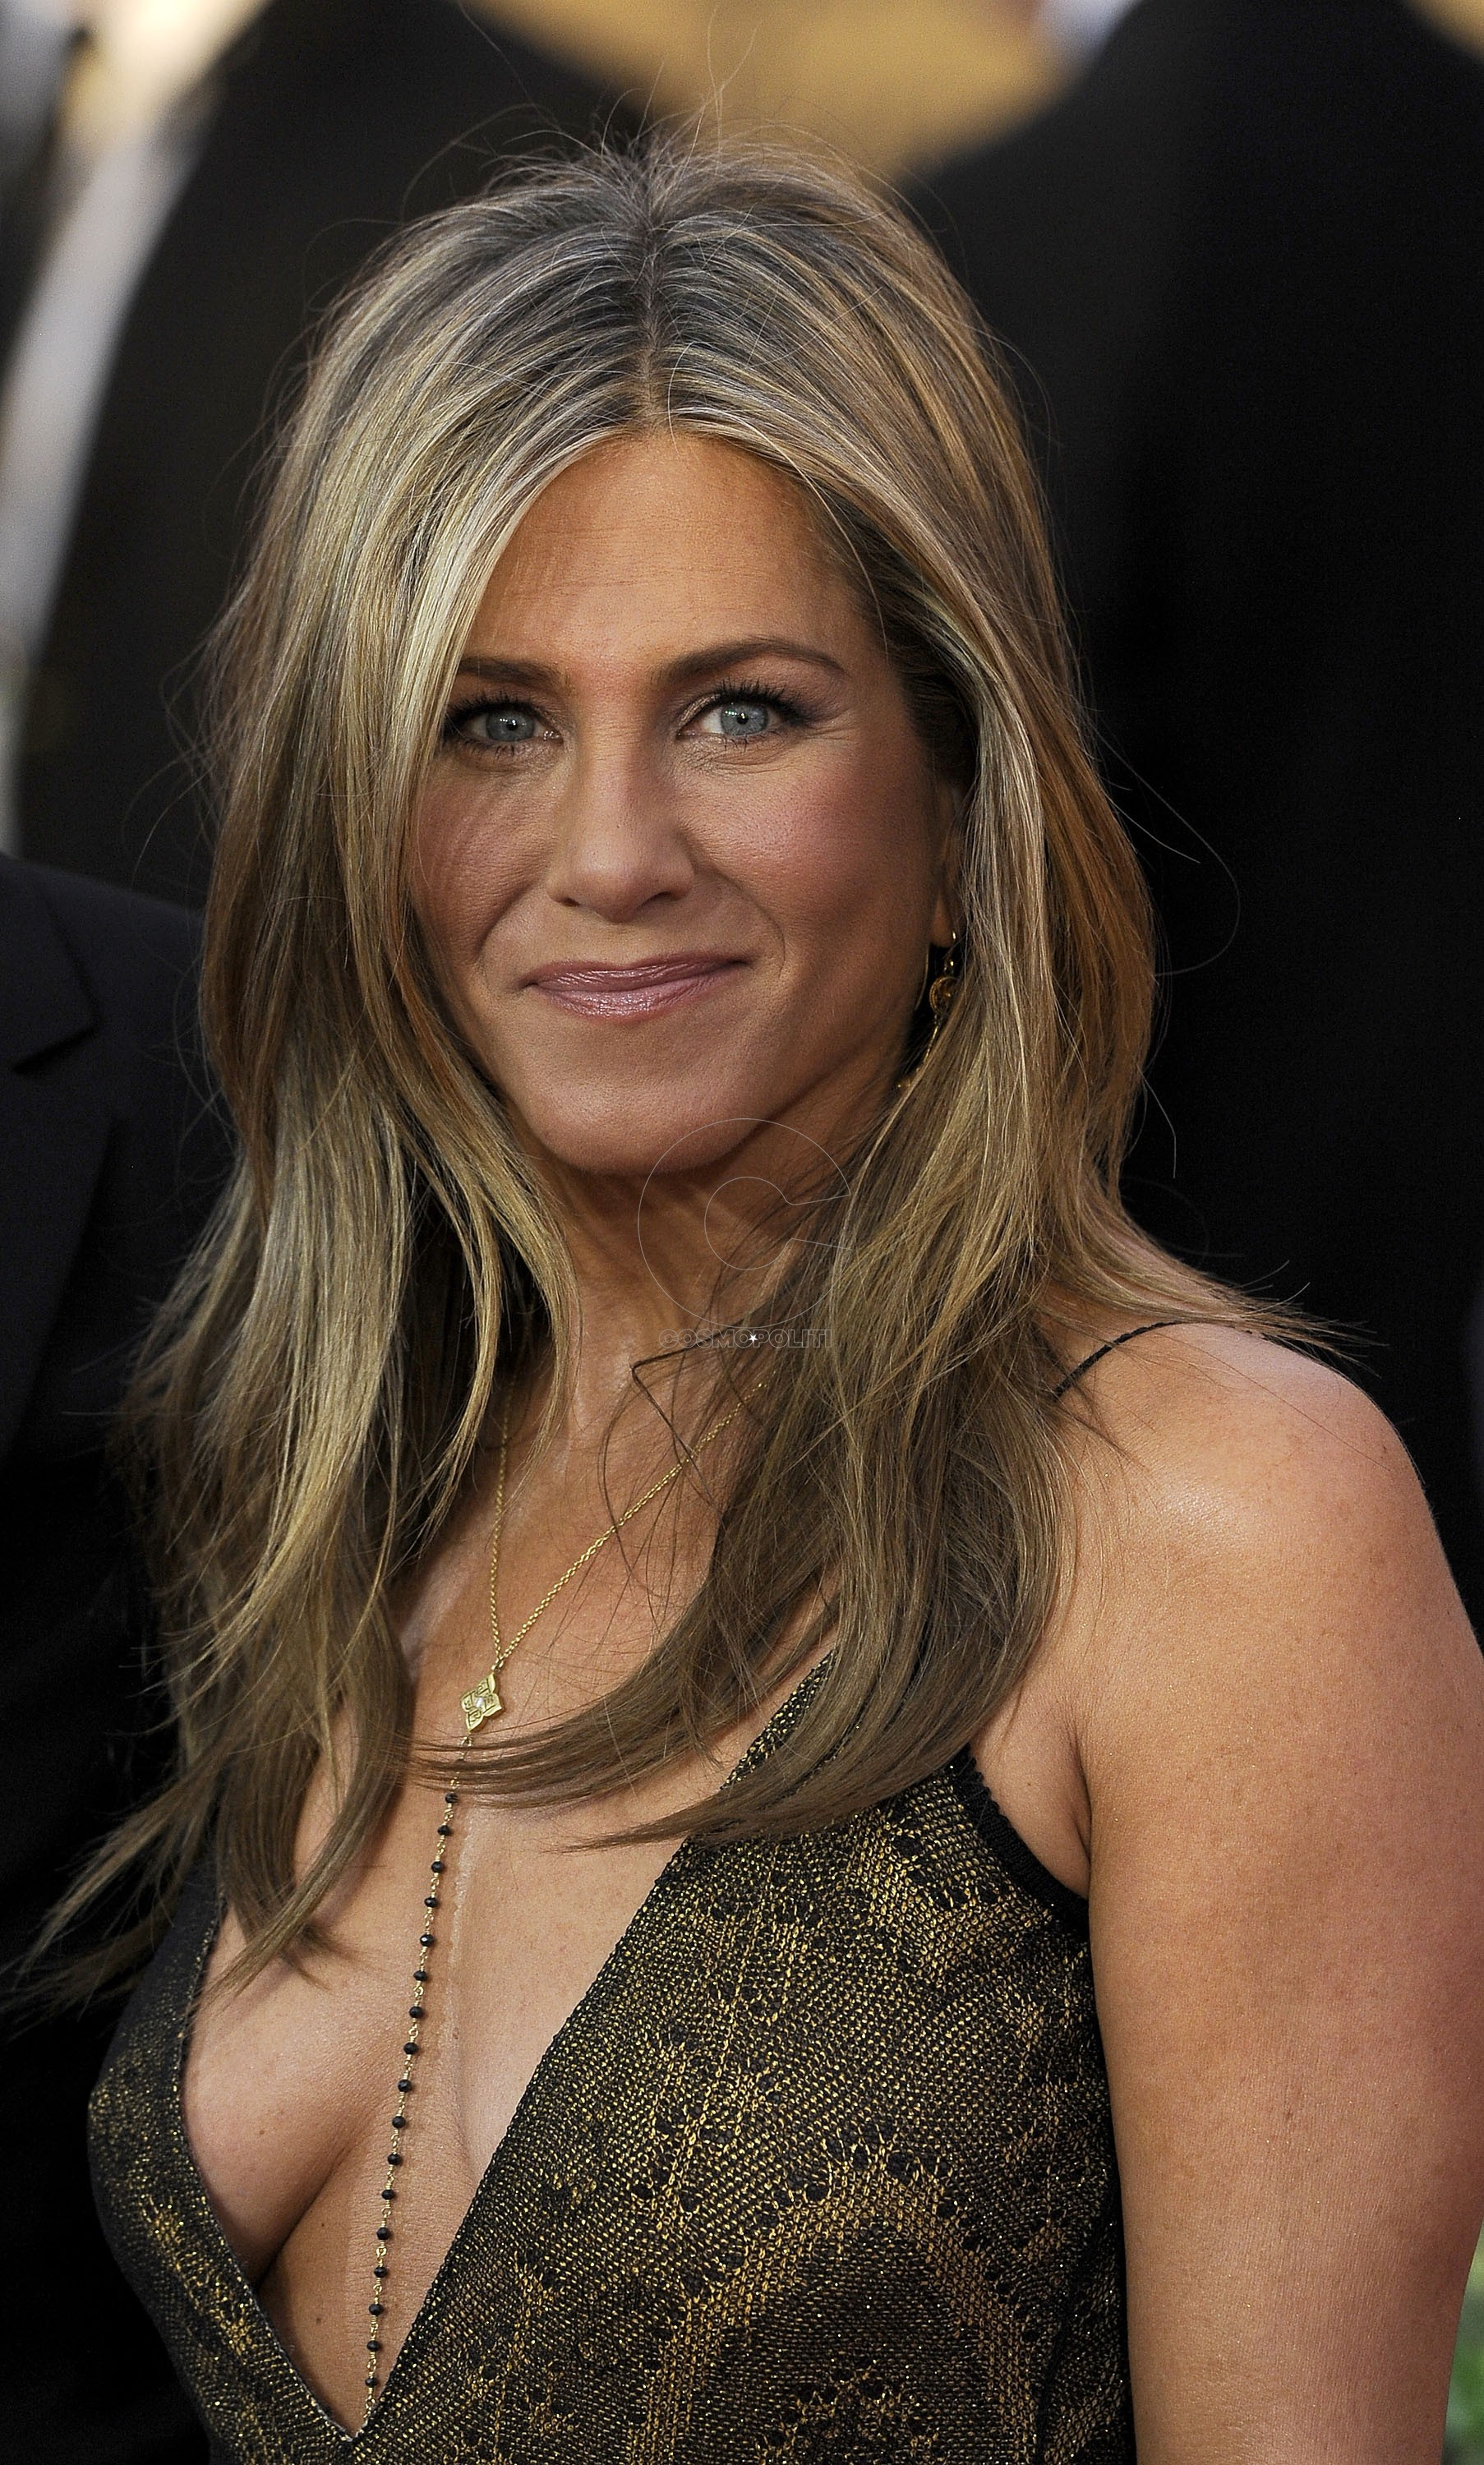 LOS ANGELES, CA - JANUARY 25:  Actress Jennifer Aniston attends TNT's 21st Annual Screen Actors Guild Awards at The Shrine Auditorium on January 25, 2015 in Los Angeles, California.  (Photo by C Flanigan/Getty Images)